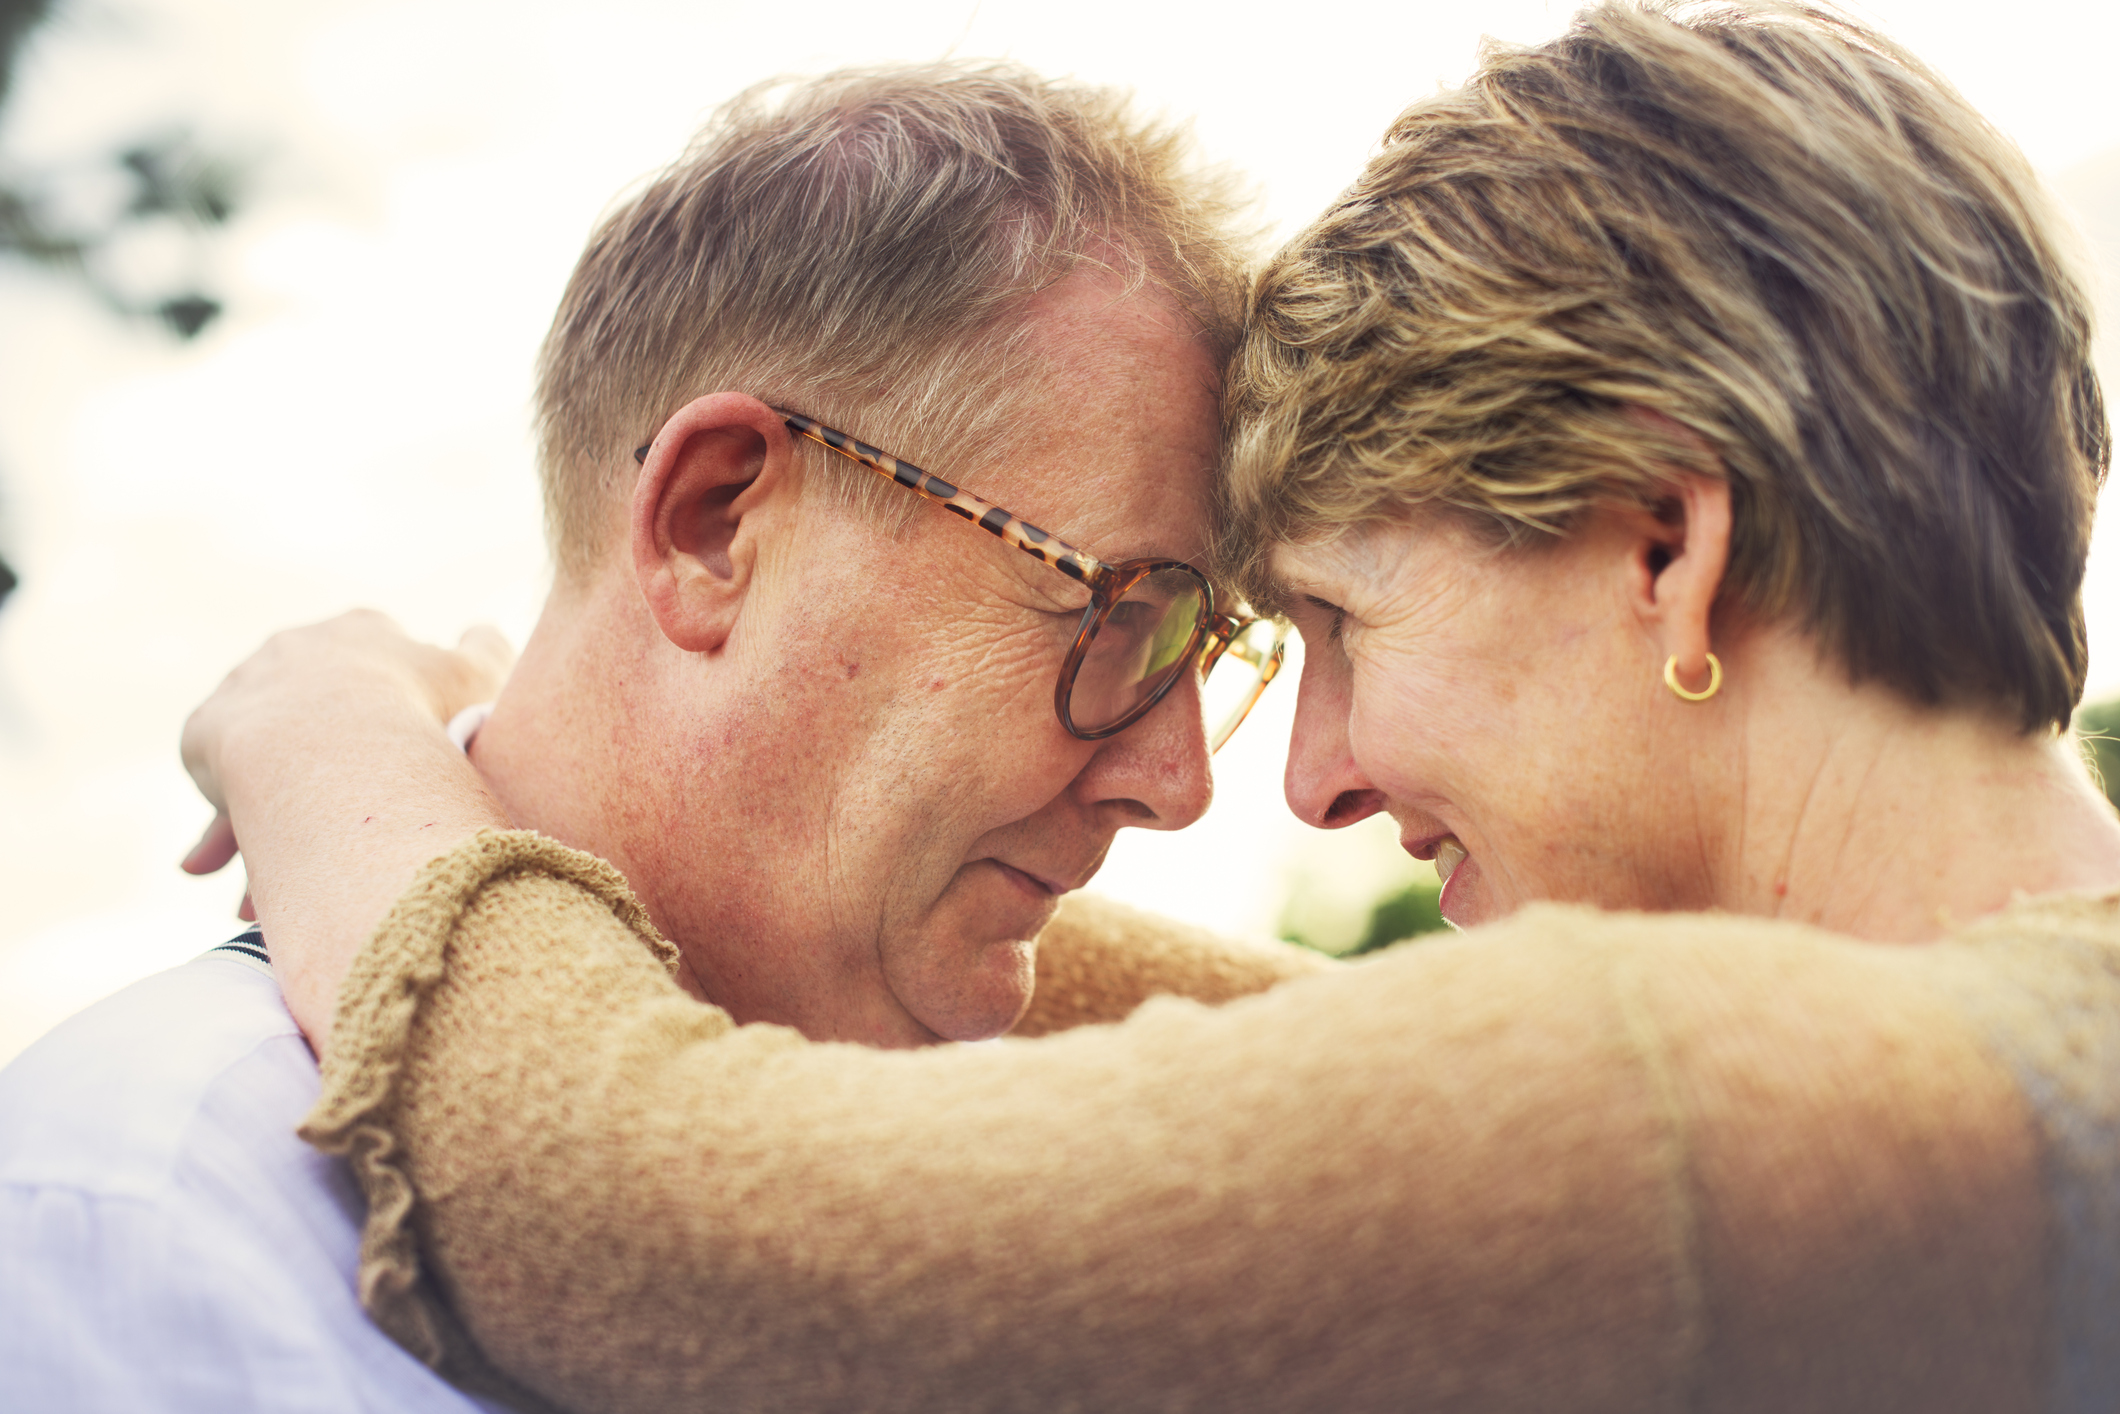 North Berkeley Couples Therapy Center - At our Premiere San Francisco East Bay Couples & Sex Therapy Center, we utilize cutting-edge modern psychotherapy approaches to relationship counseling & sex therapy, rooted in neuroscience and attachment.